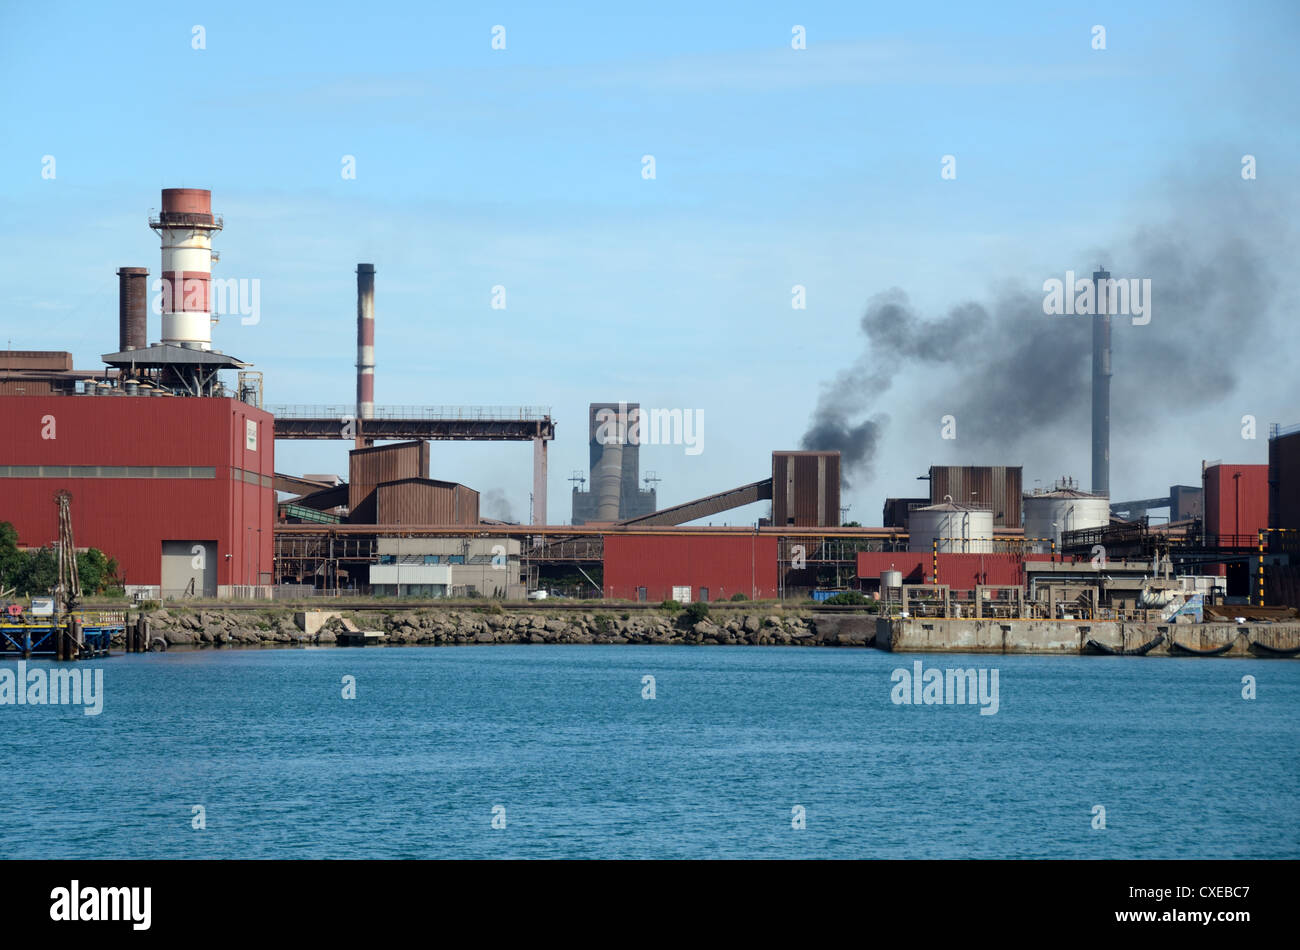 Smoke Stacks and Air Pollution from the ArcelorMittal Steelworks Martigues Autonomous Port of Marseille or Marseilles - Stock Image